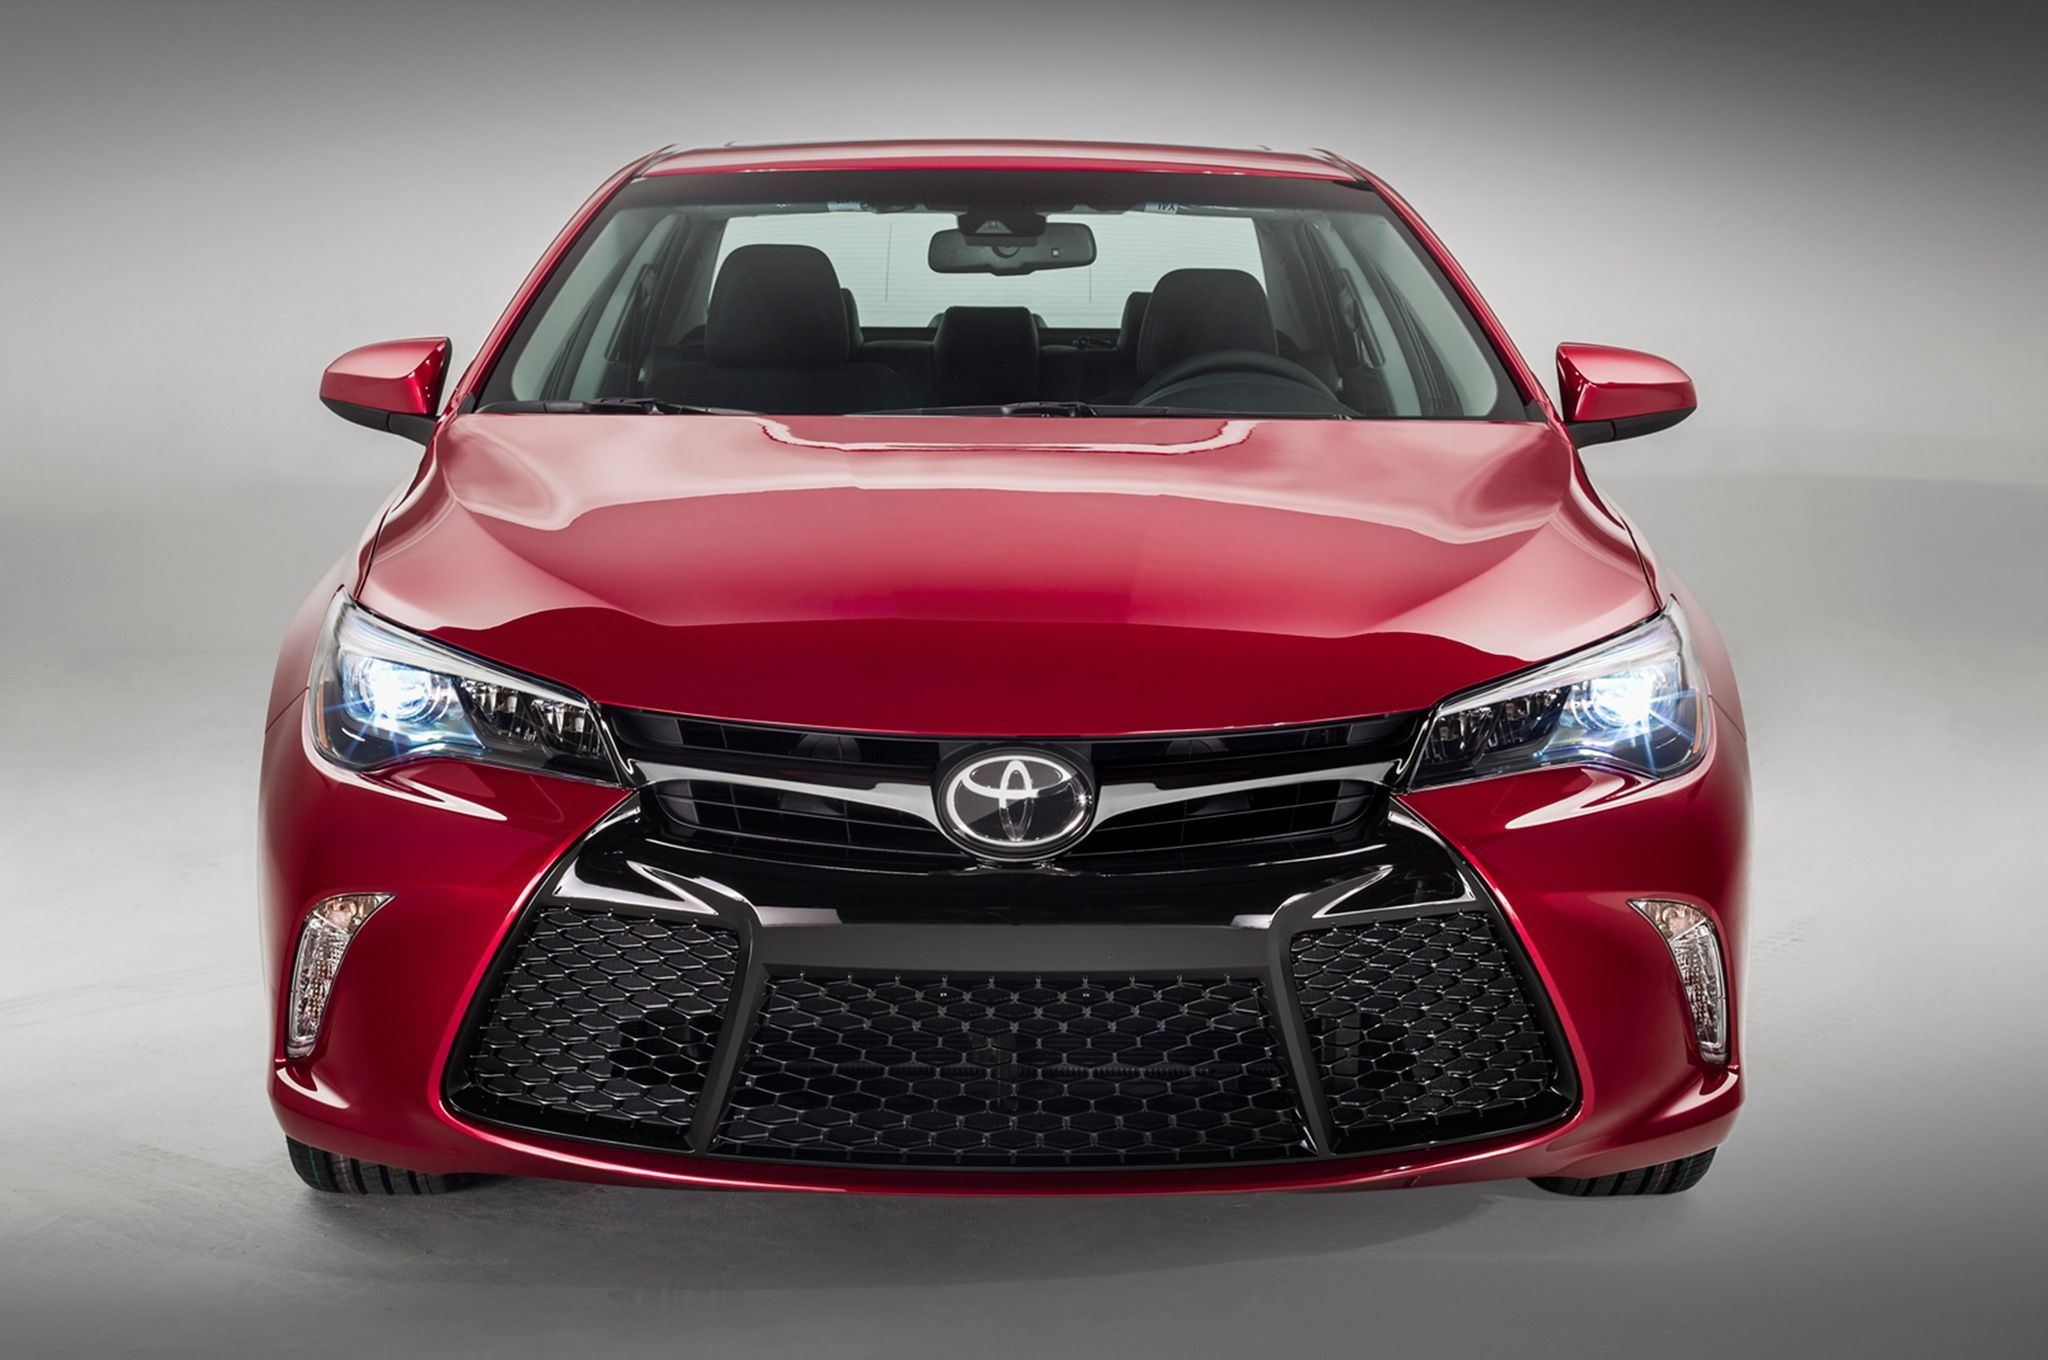 Best 20 camry price ideas on pinterest toyota toyota cars and toyota camry